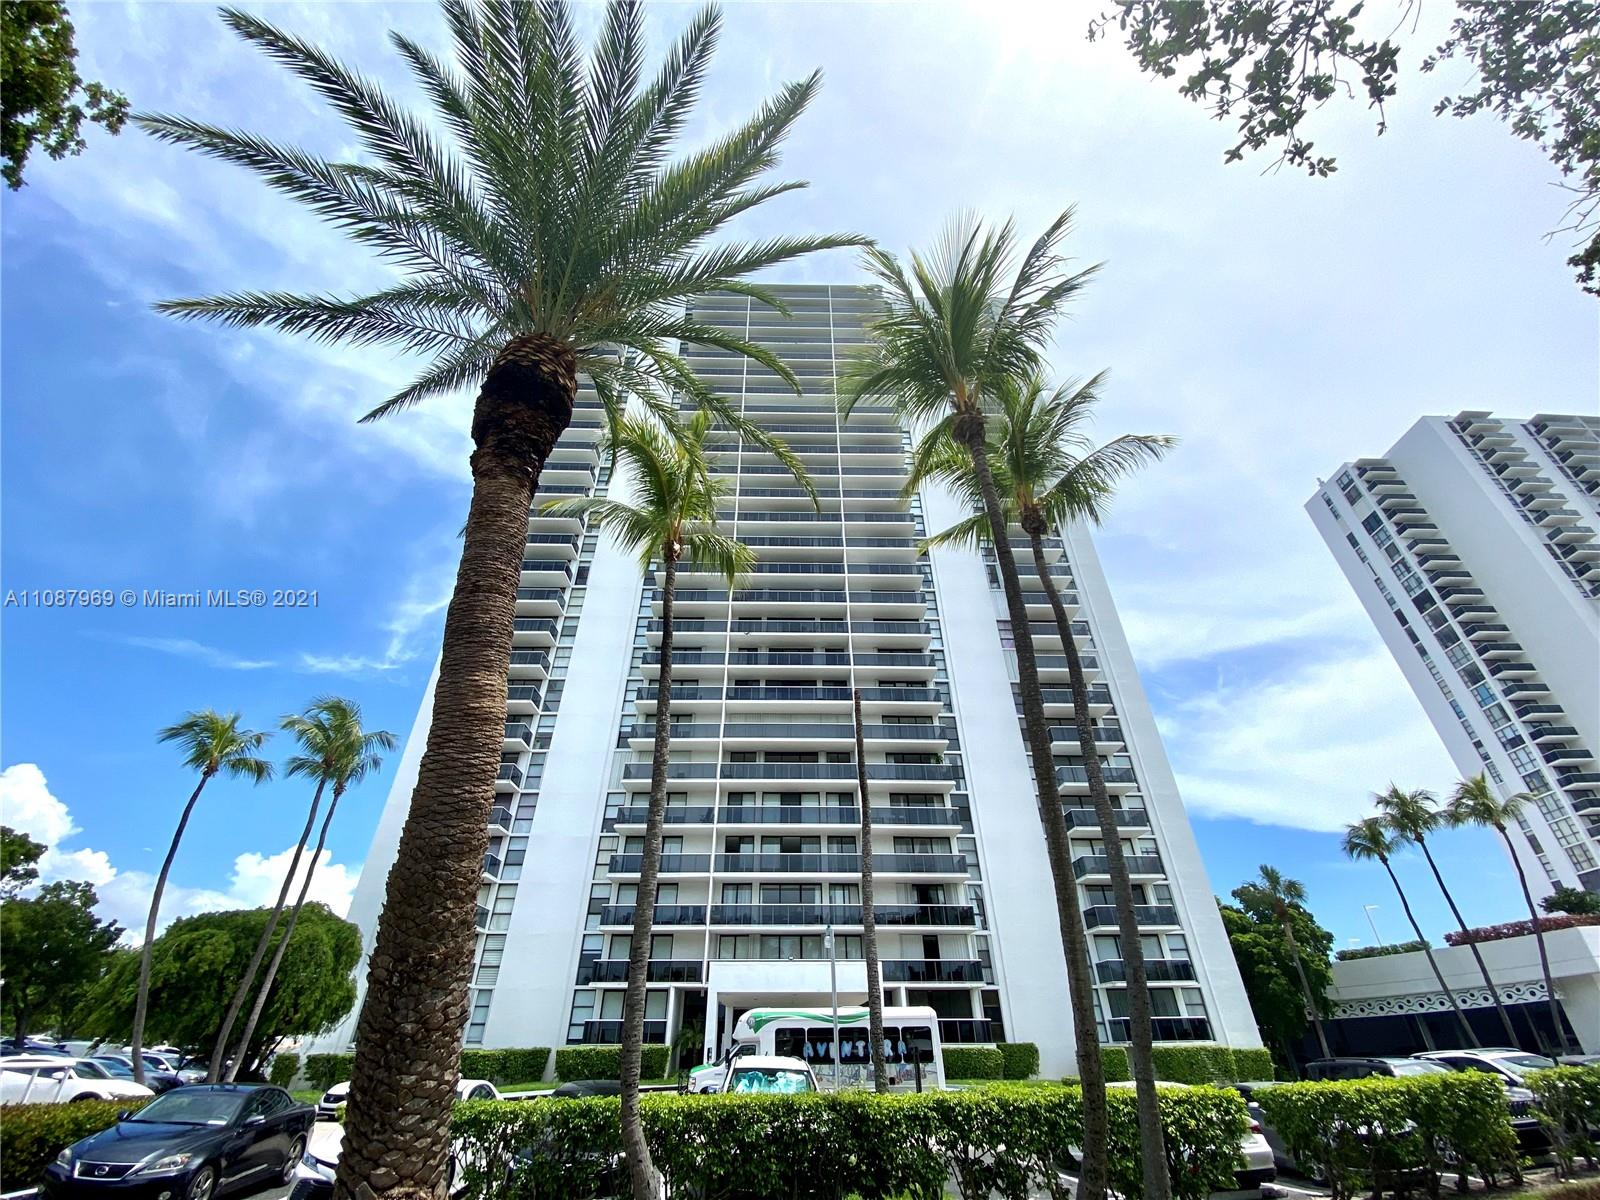 3625 N Country Club Dr #210 For Sale A11087969, FL